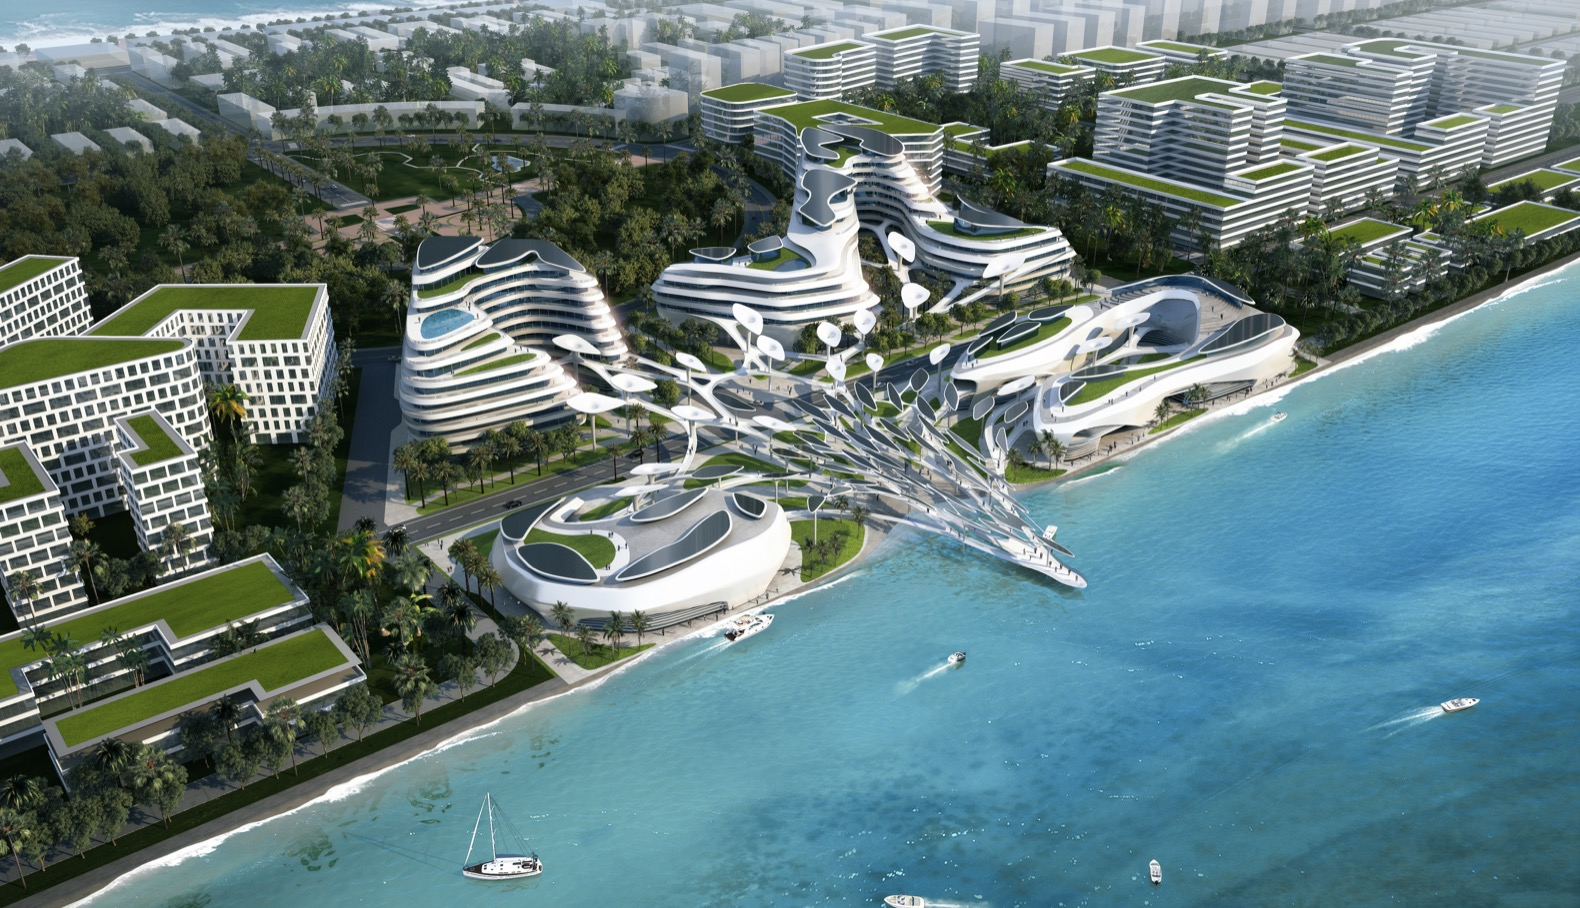 Futuristic eco-city powered with renewable energy is unveiled for the Maldives